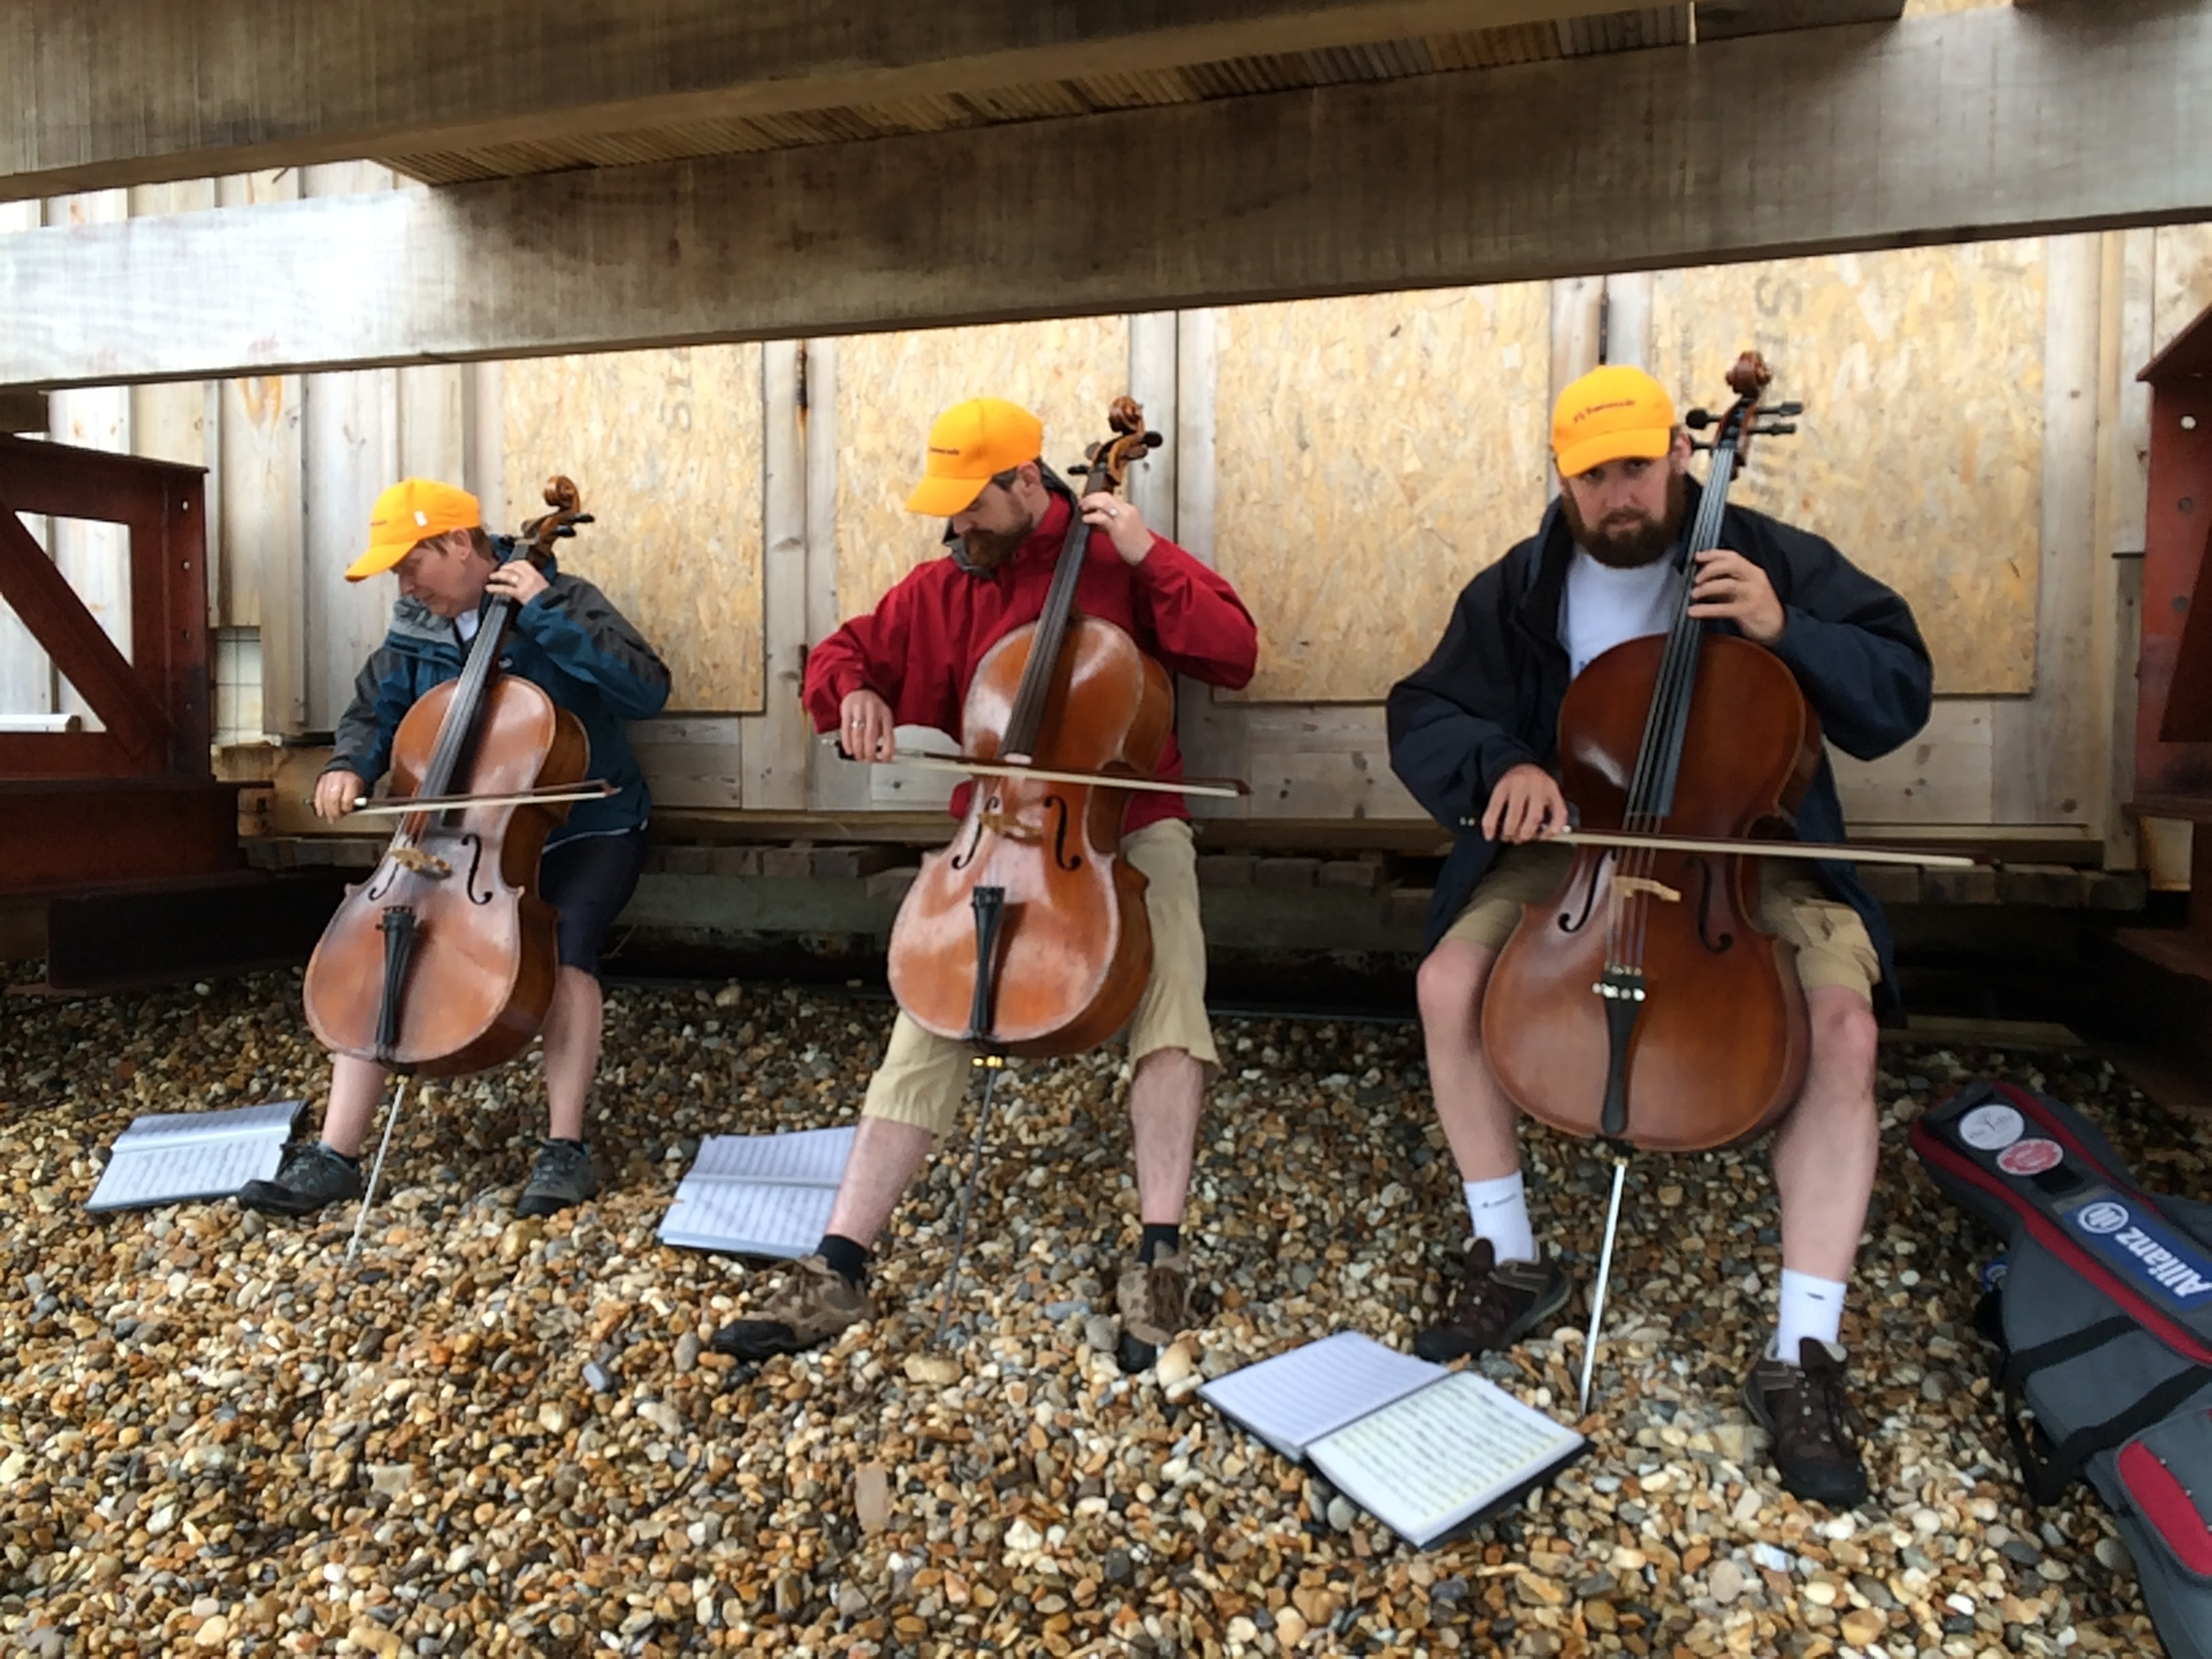 Playing under Totland Bay pier